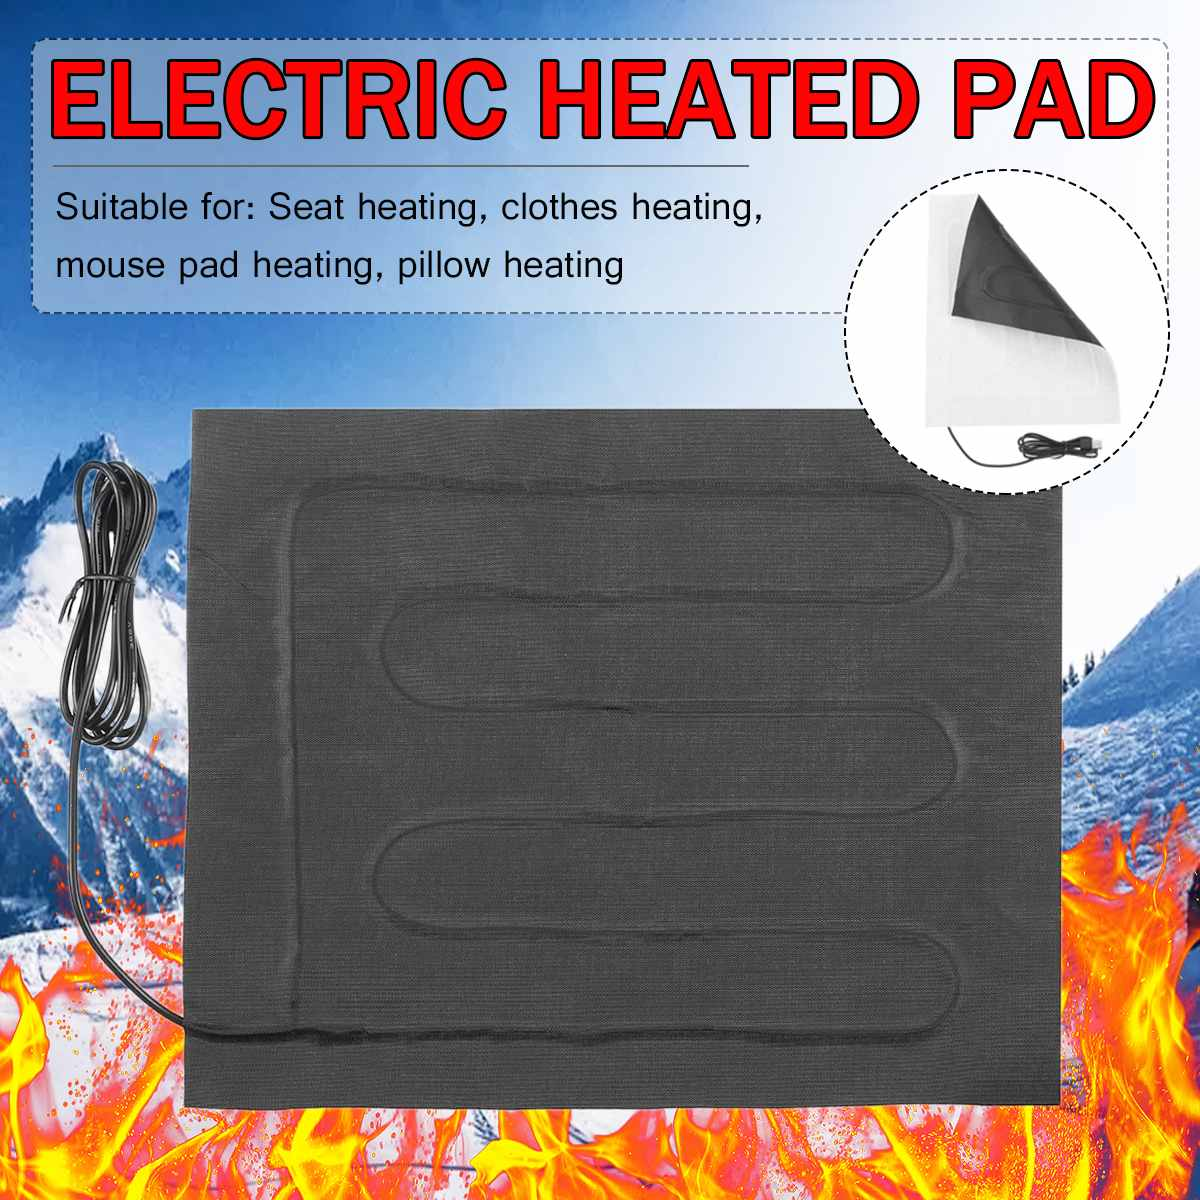 24*30CM USB Electric Heater Heating Pad For DIY Thermal Vest Jacket Clothing Heated Pads Winter Body Warmer